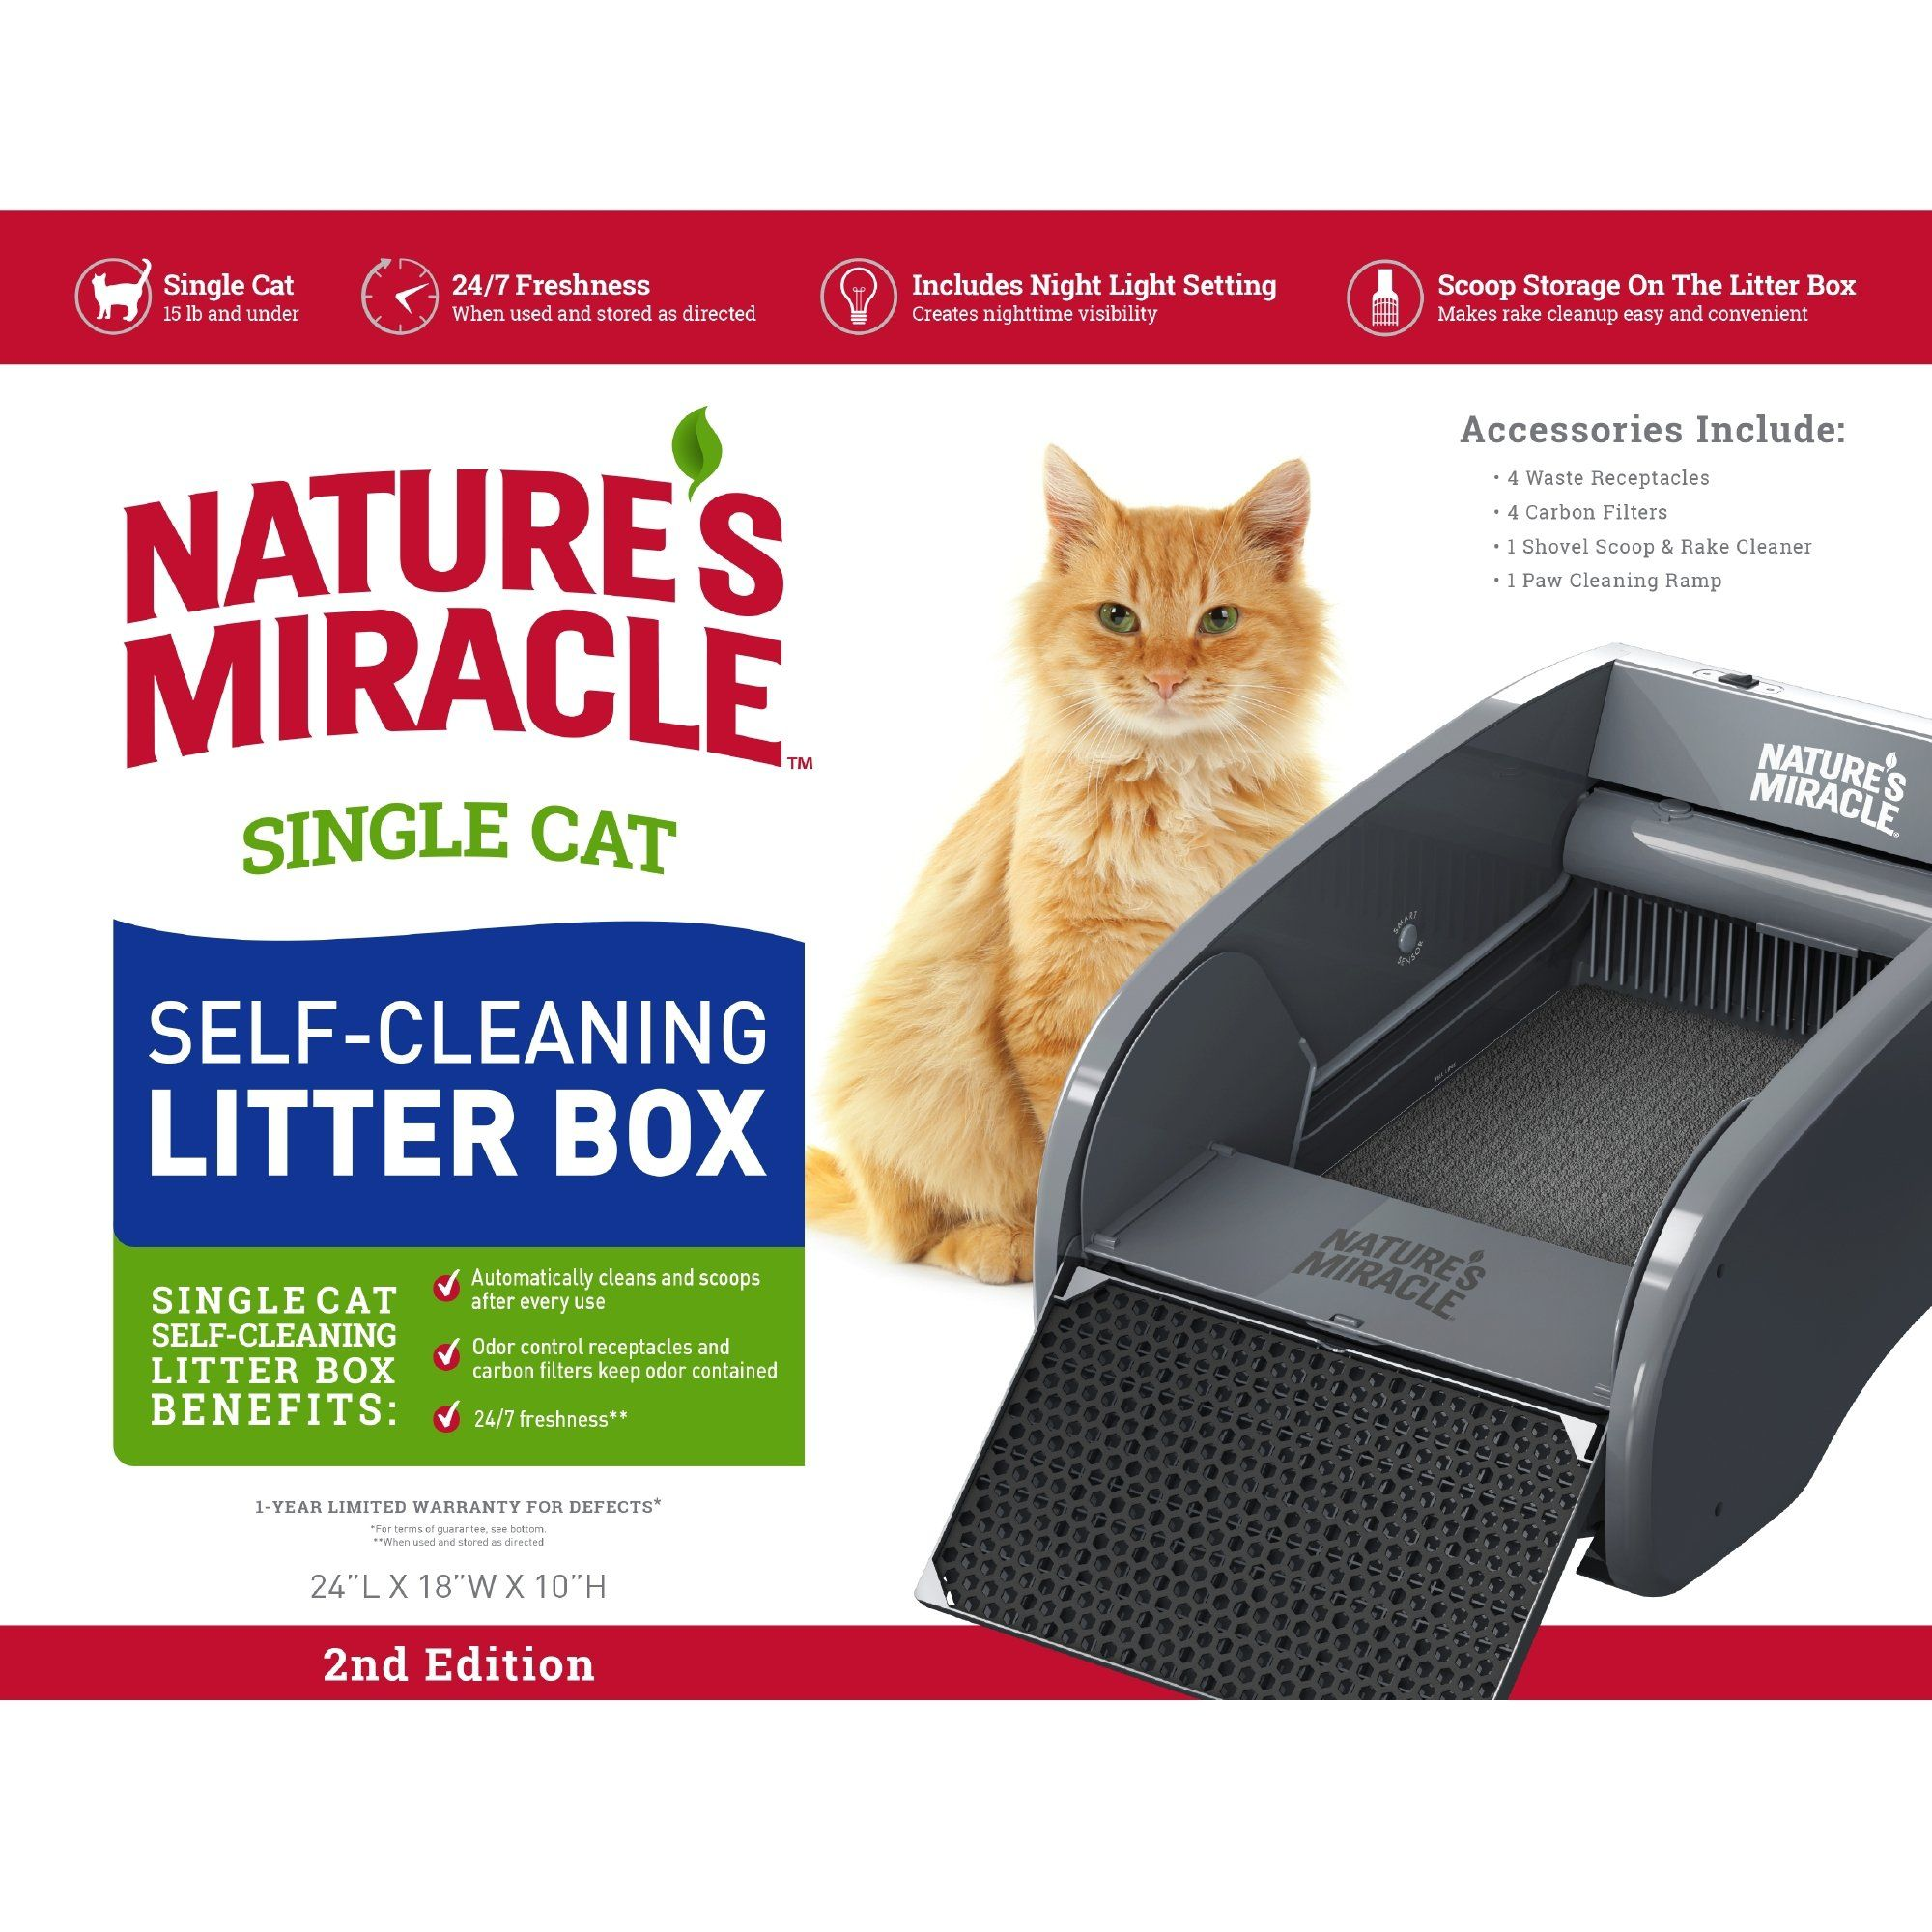 Nature's Miracle Single Cat SelfCleaning Litter Box